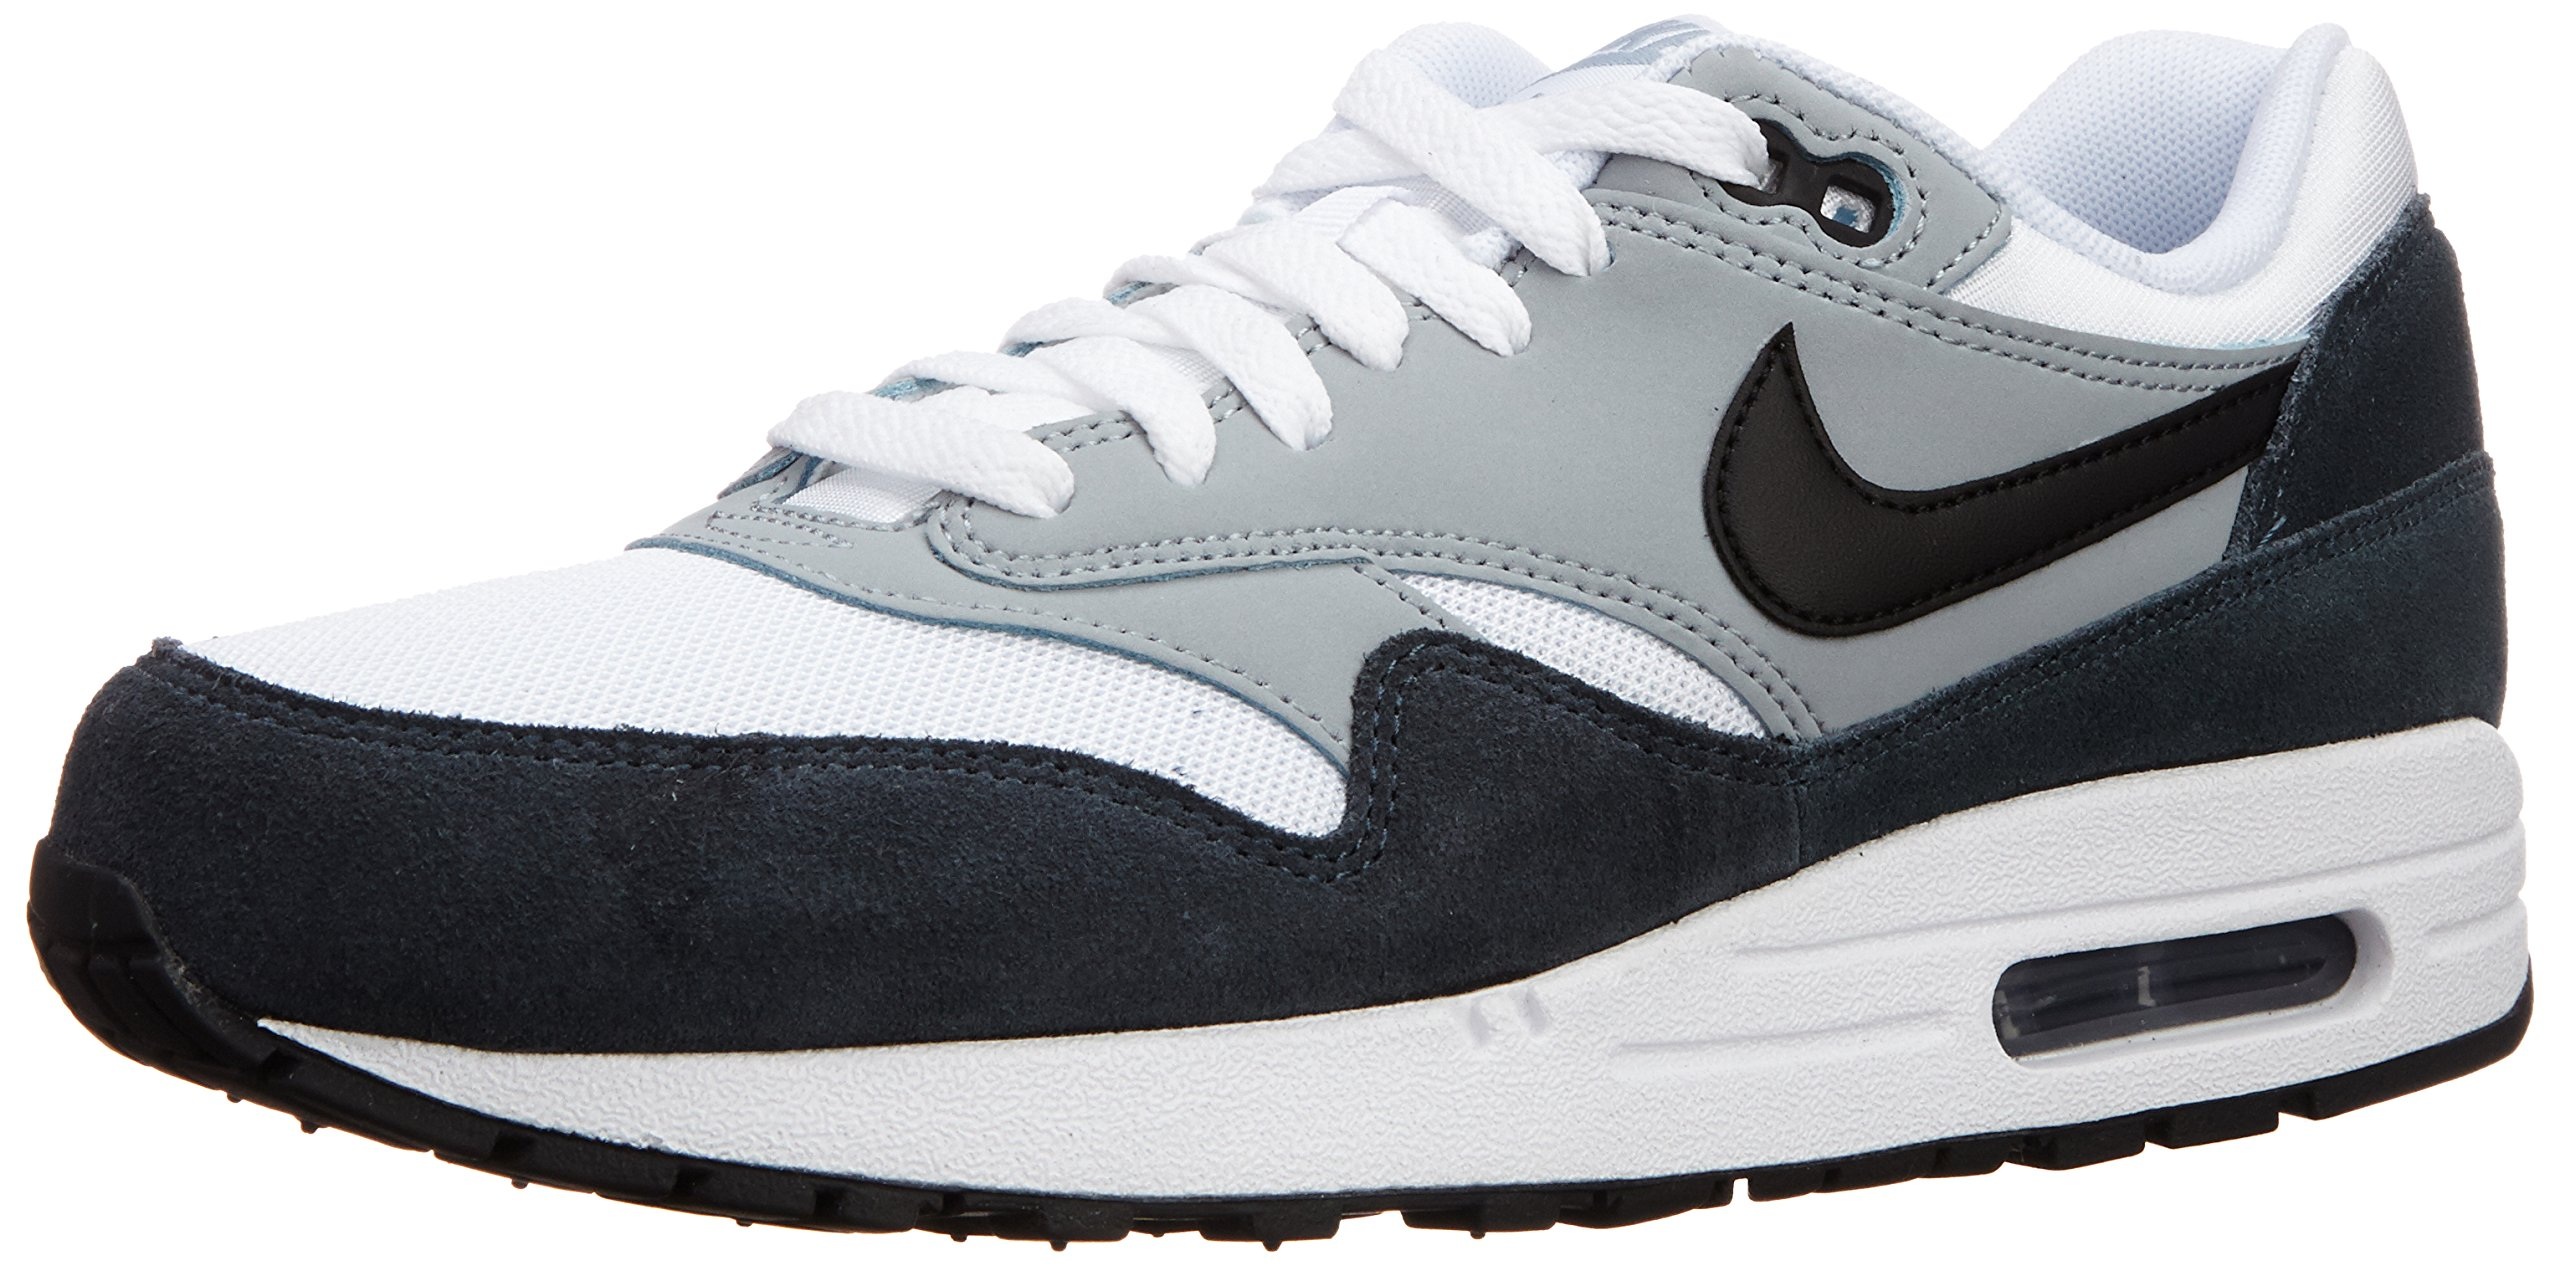 watch 67db6 53121 Galleon - NIKE AIR MAX 1 ESSENTIAL Men s Running Shoes Sneakers 537383-117  (M US 10)